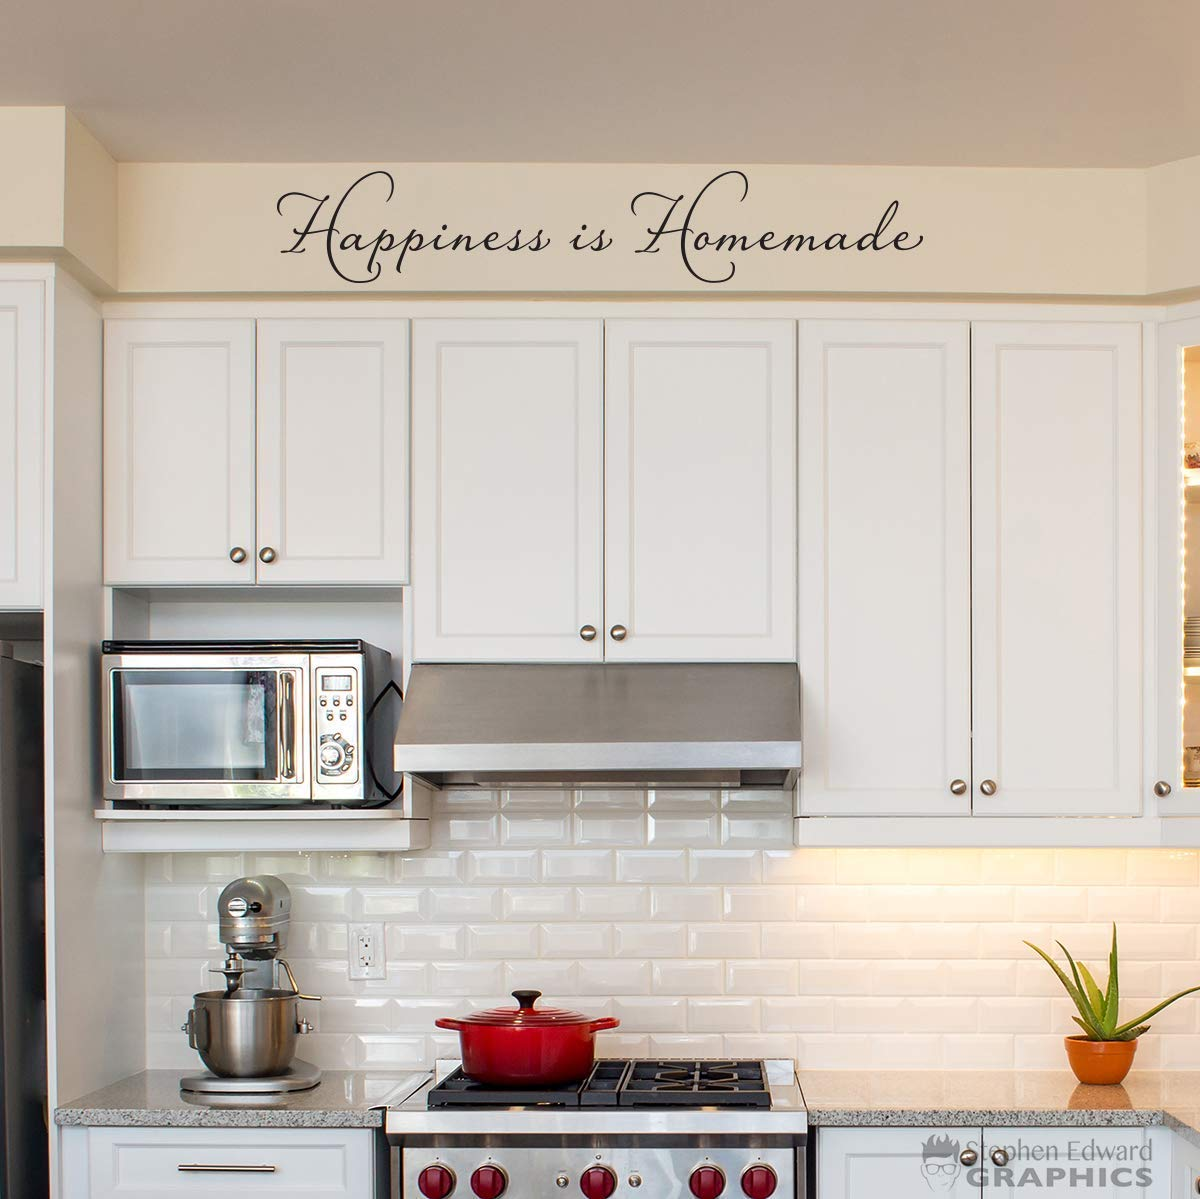 Amazon Com Happiness Is Homemade Wall Decal Kitchen Decor One Line Version Handmade